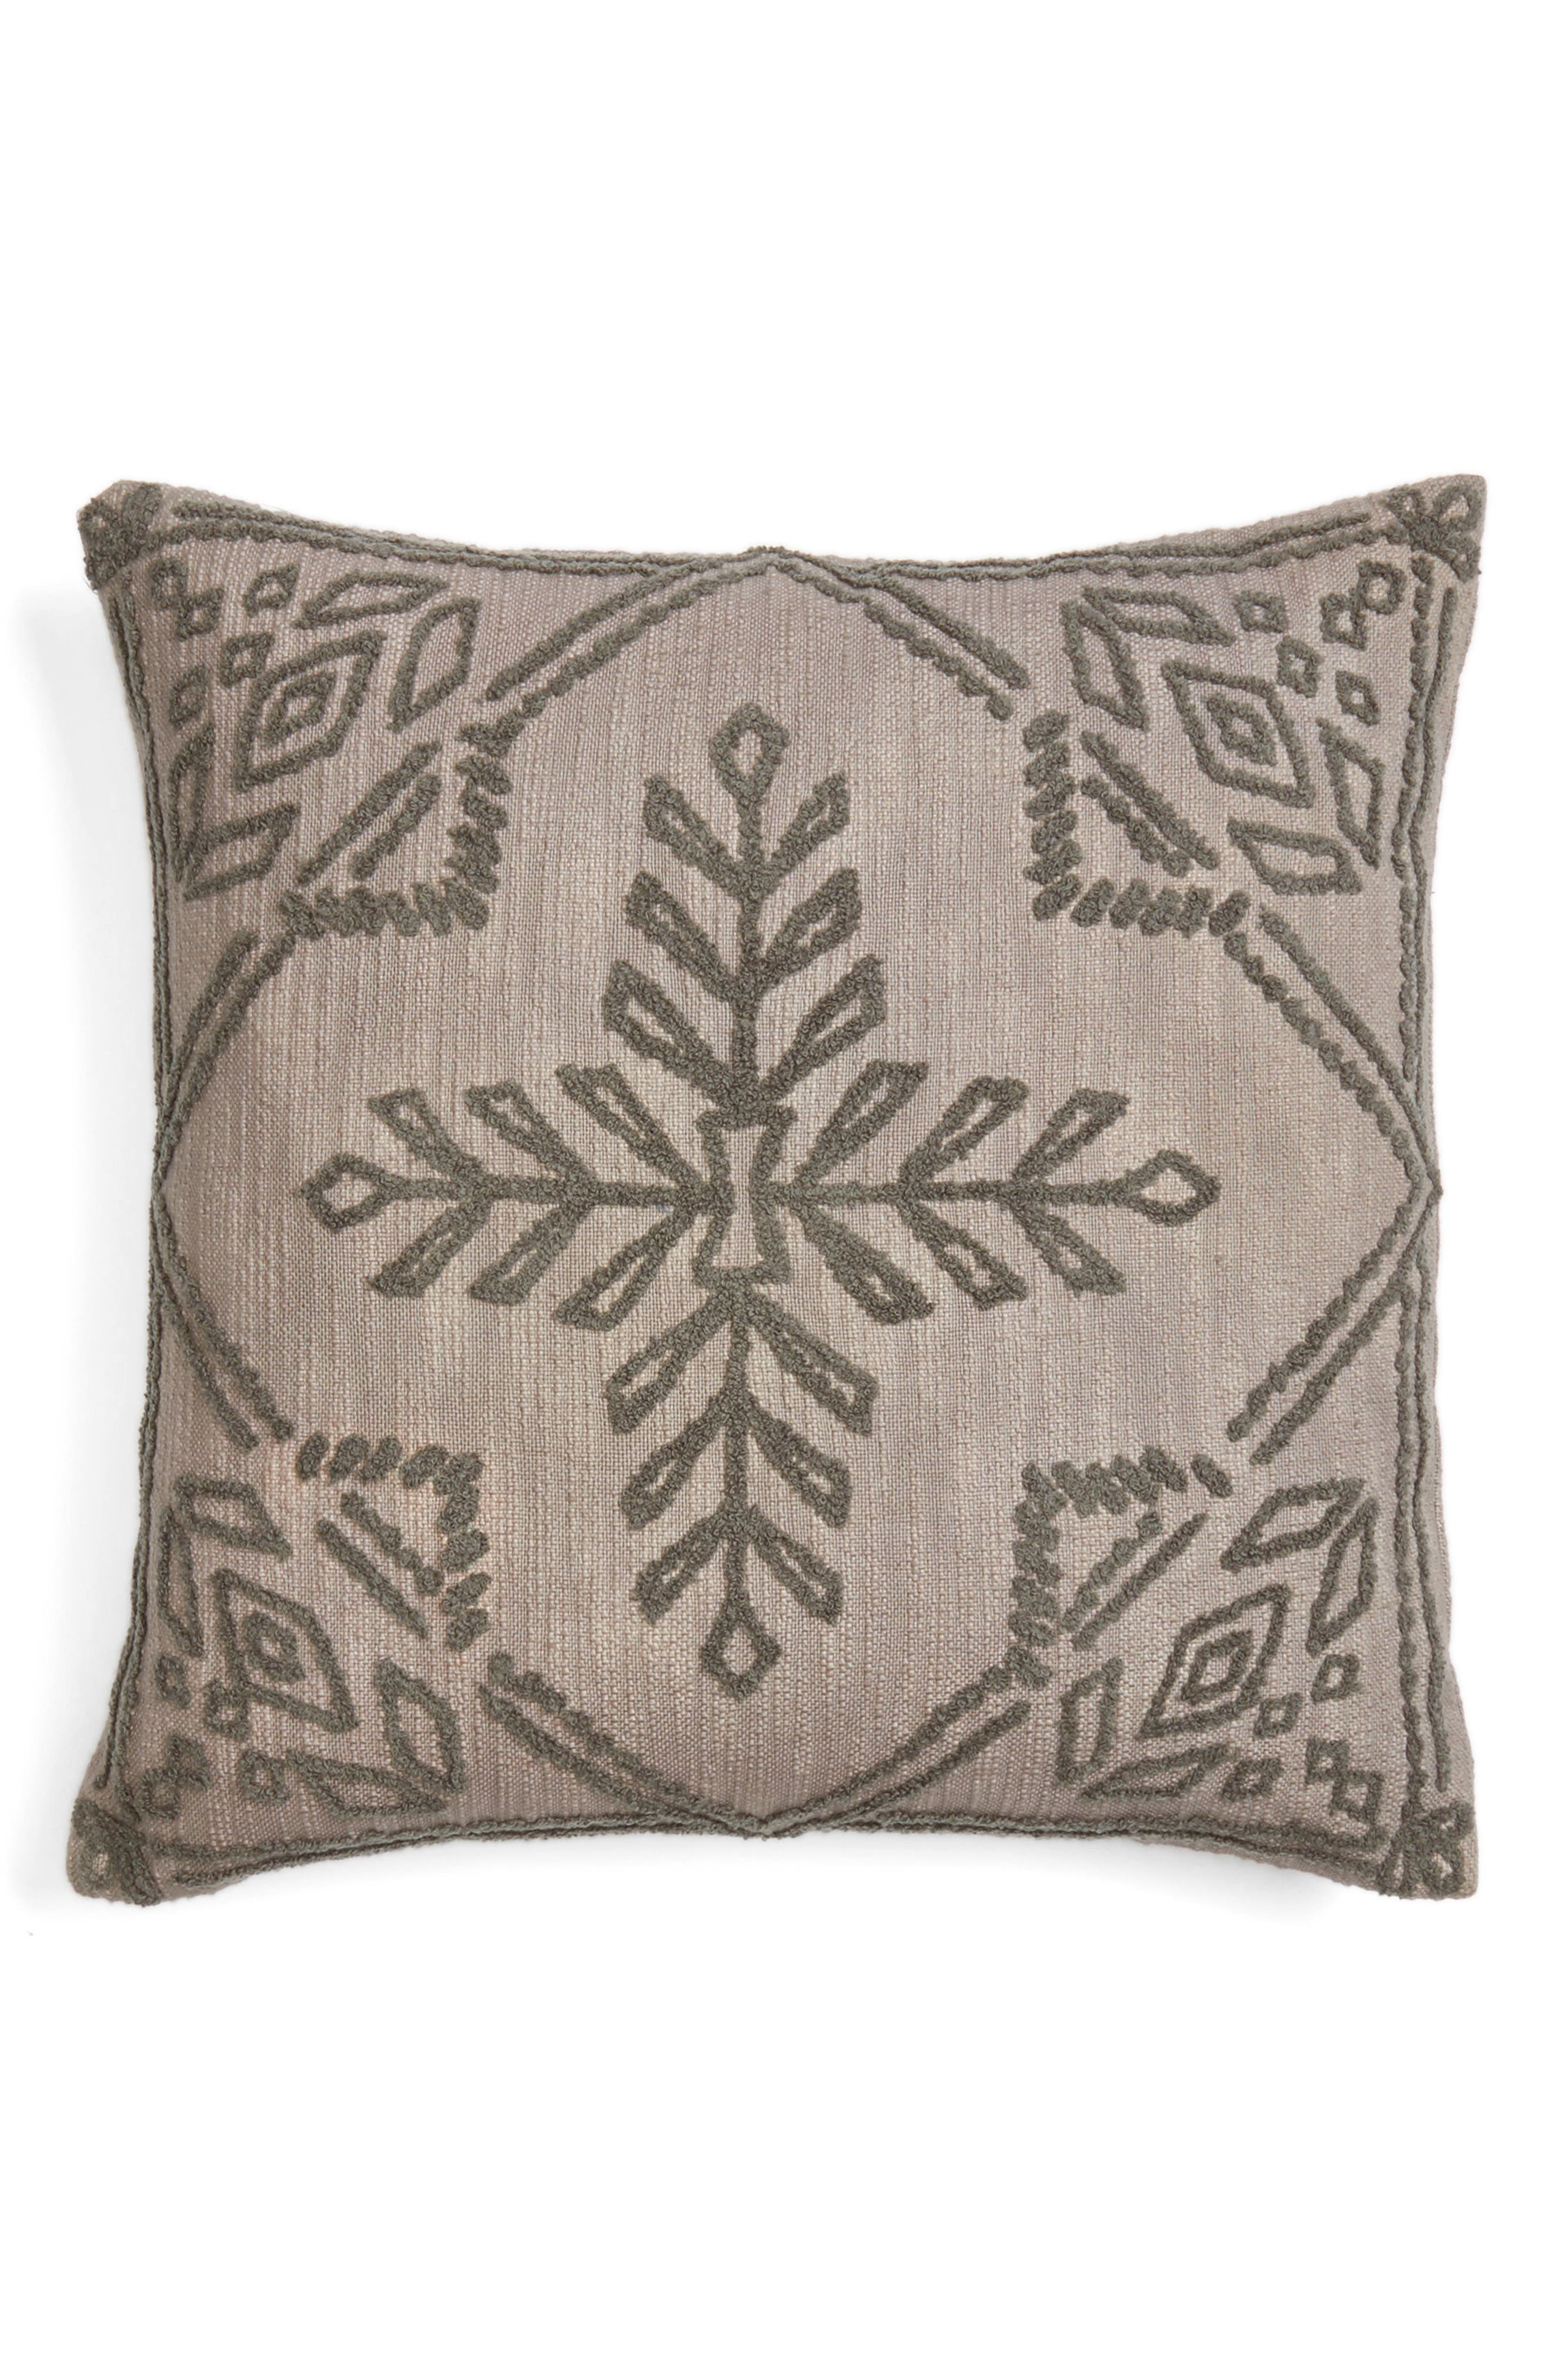 Nordstrom at Home Aya Embroidered Accent Pillow